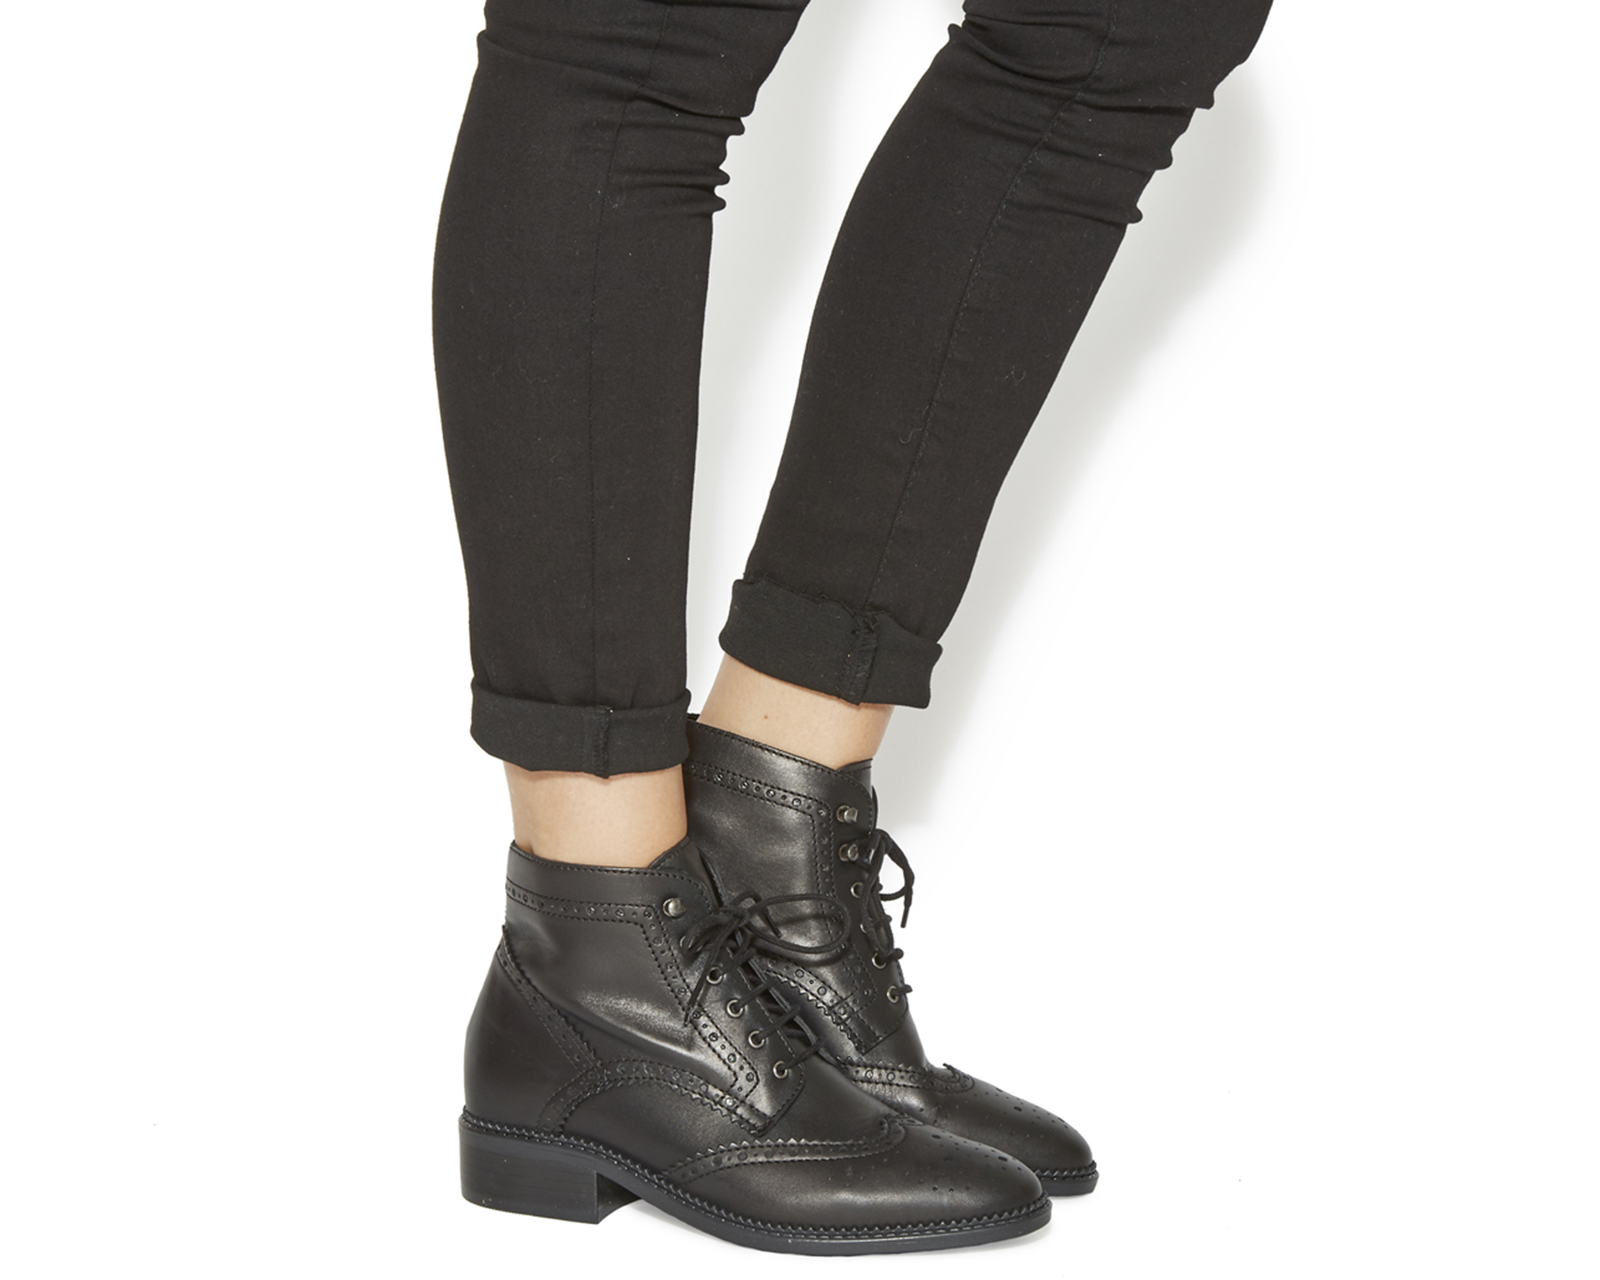 Womens Office Limerick Brogue Lace Up Boots Black Leather Ebay